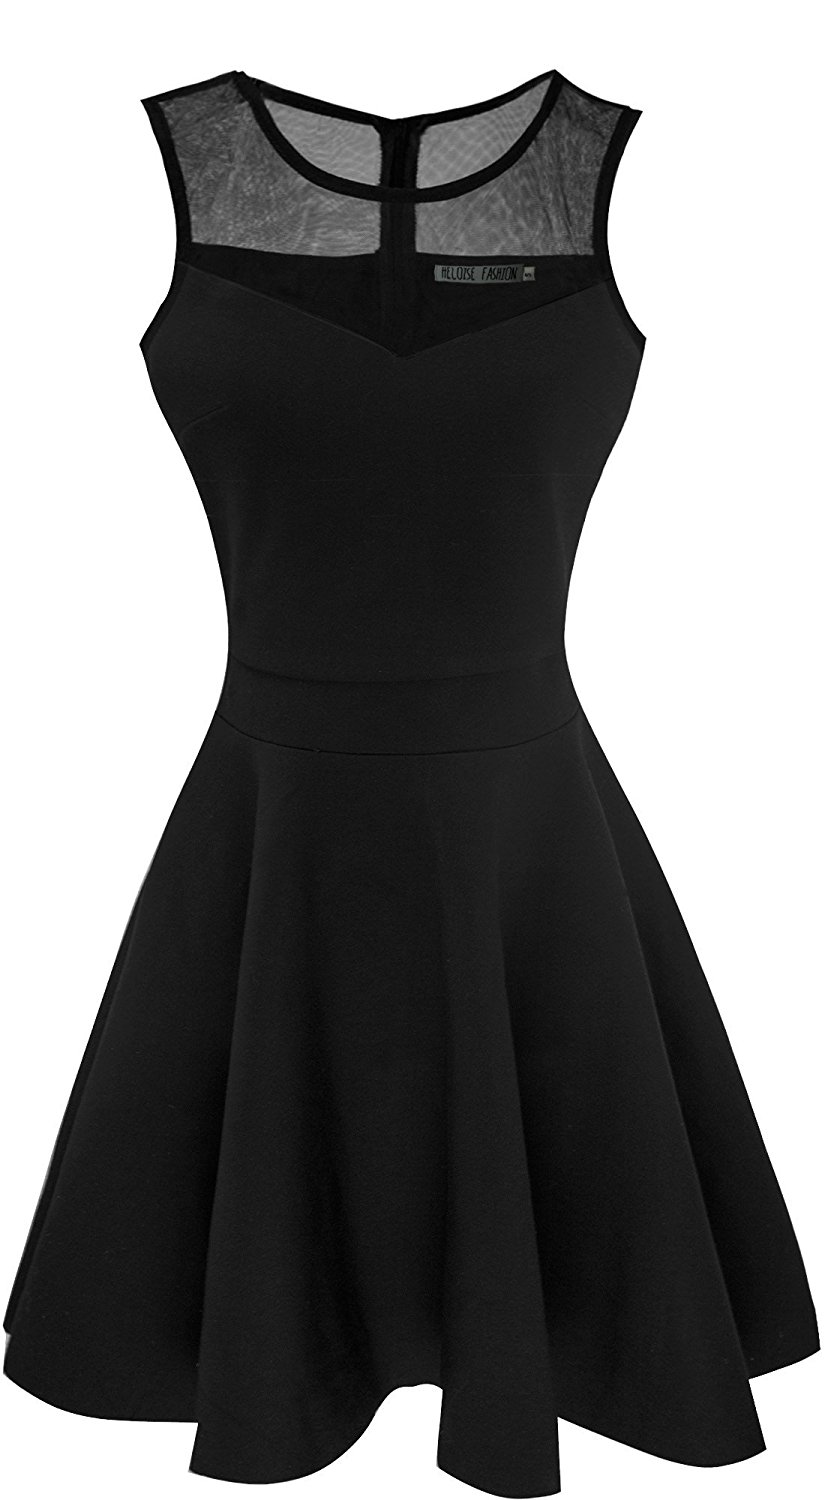 An Audrey-Esque Dress - Every girl needs a LBD.